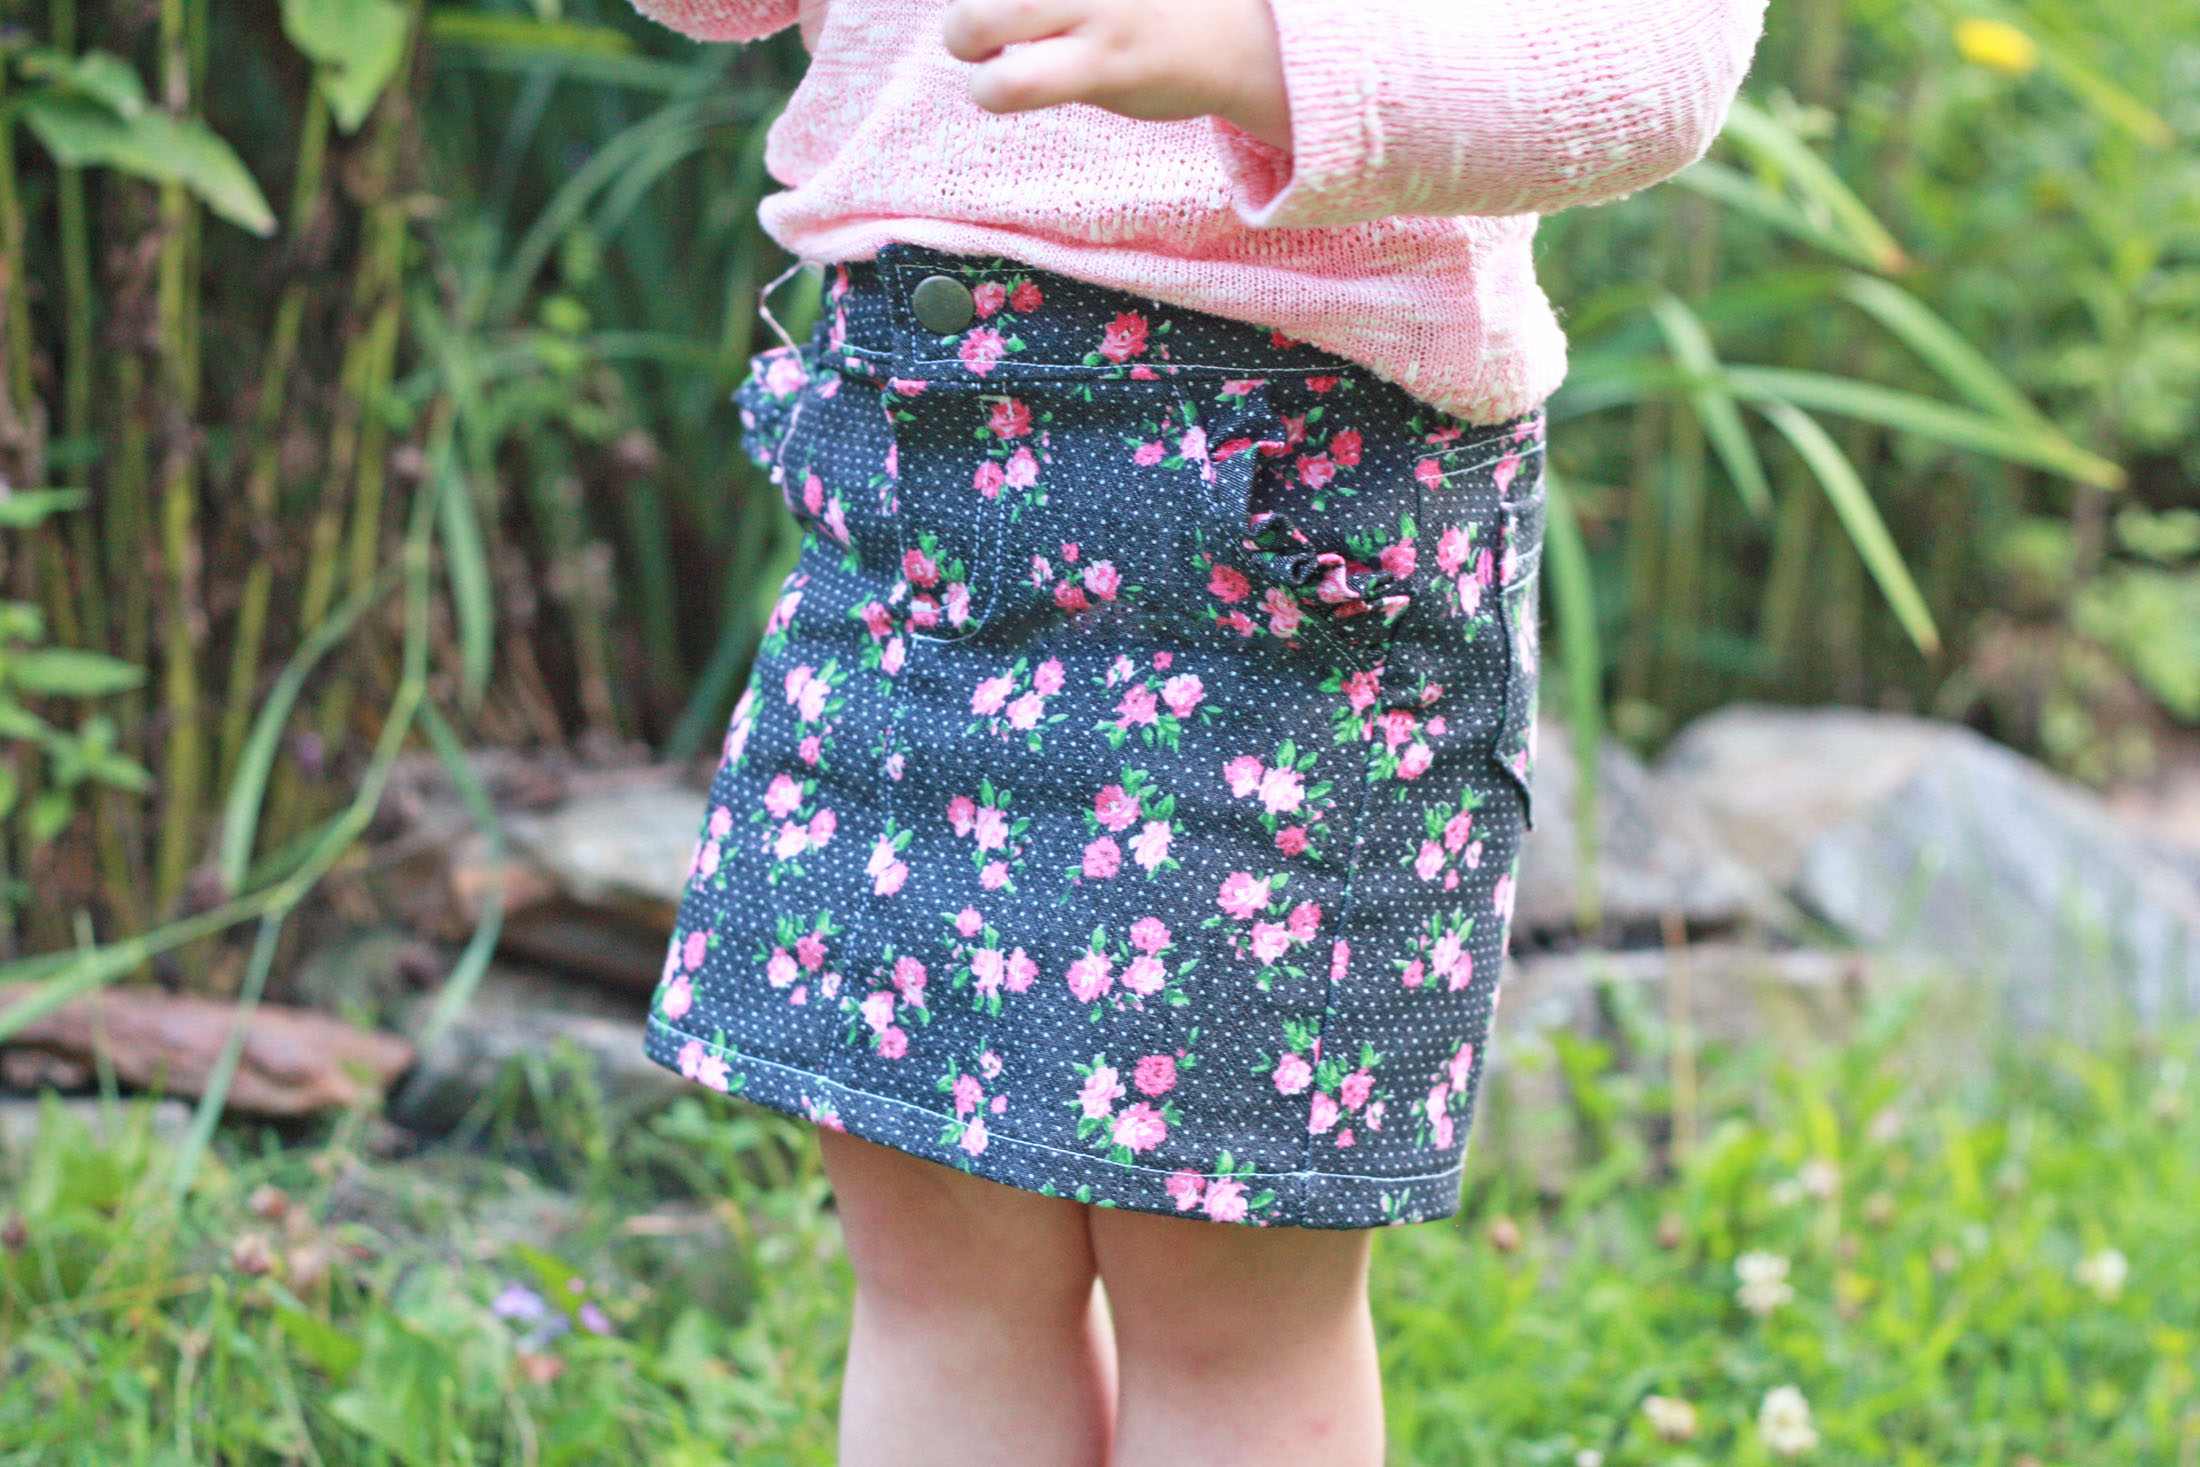 The Linden Shorts & Skirt Pattern is loaded with options perfect for both boys and girls.There are two short lengths; long is designed to hit at the knee, while the short version hits just above mid thigh. The pattern also comes with a skirt option that hits just above the knee. All versions come with multiple hem finishes, three front pocket and four back pocket options, an optional back yoke, and three waistband choices. You can create so many different looks with just one pattern!